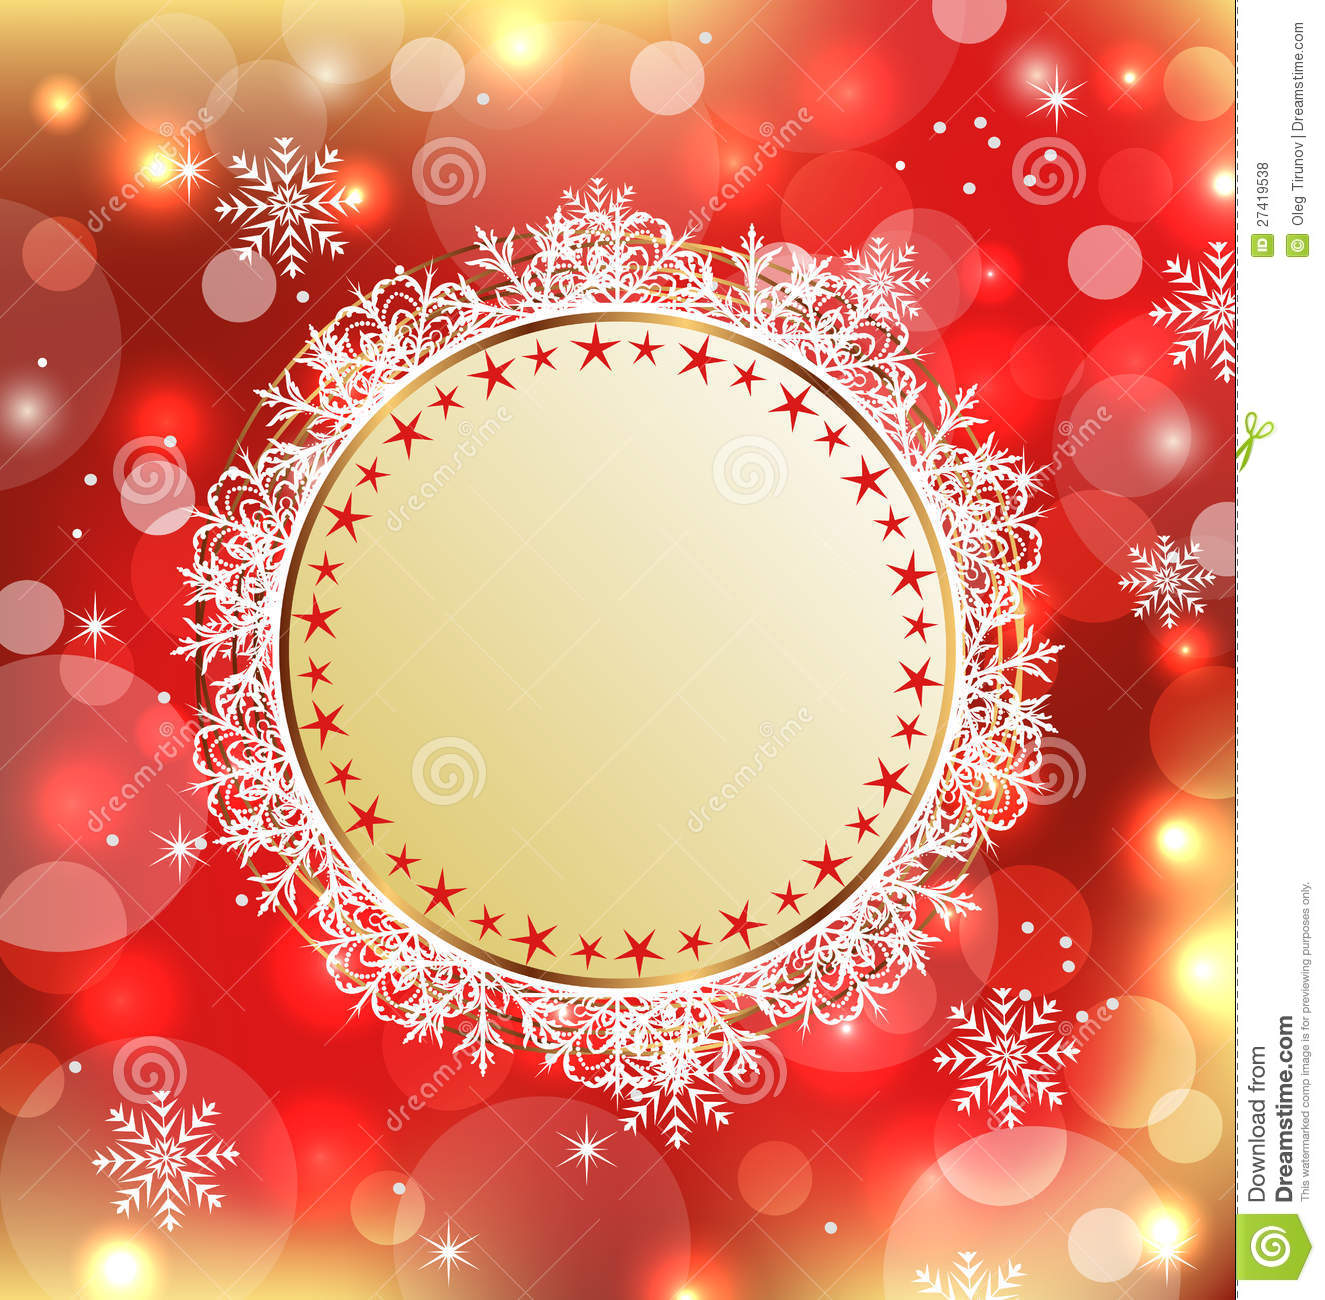 Christmas holiday background with greeting card stock vector christmas holiday background with greeting card m4hsunfo